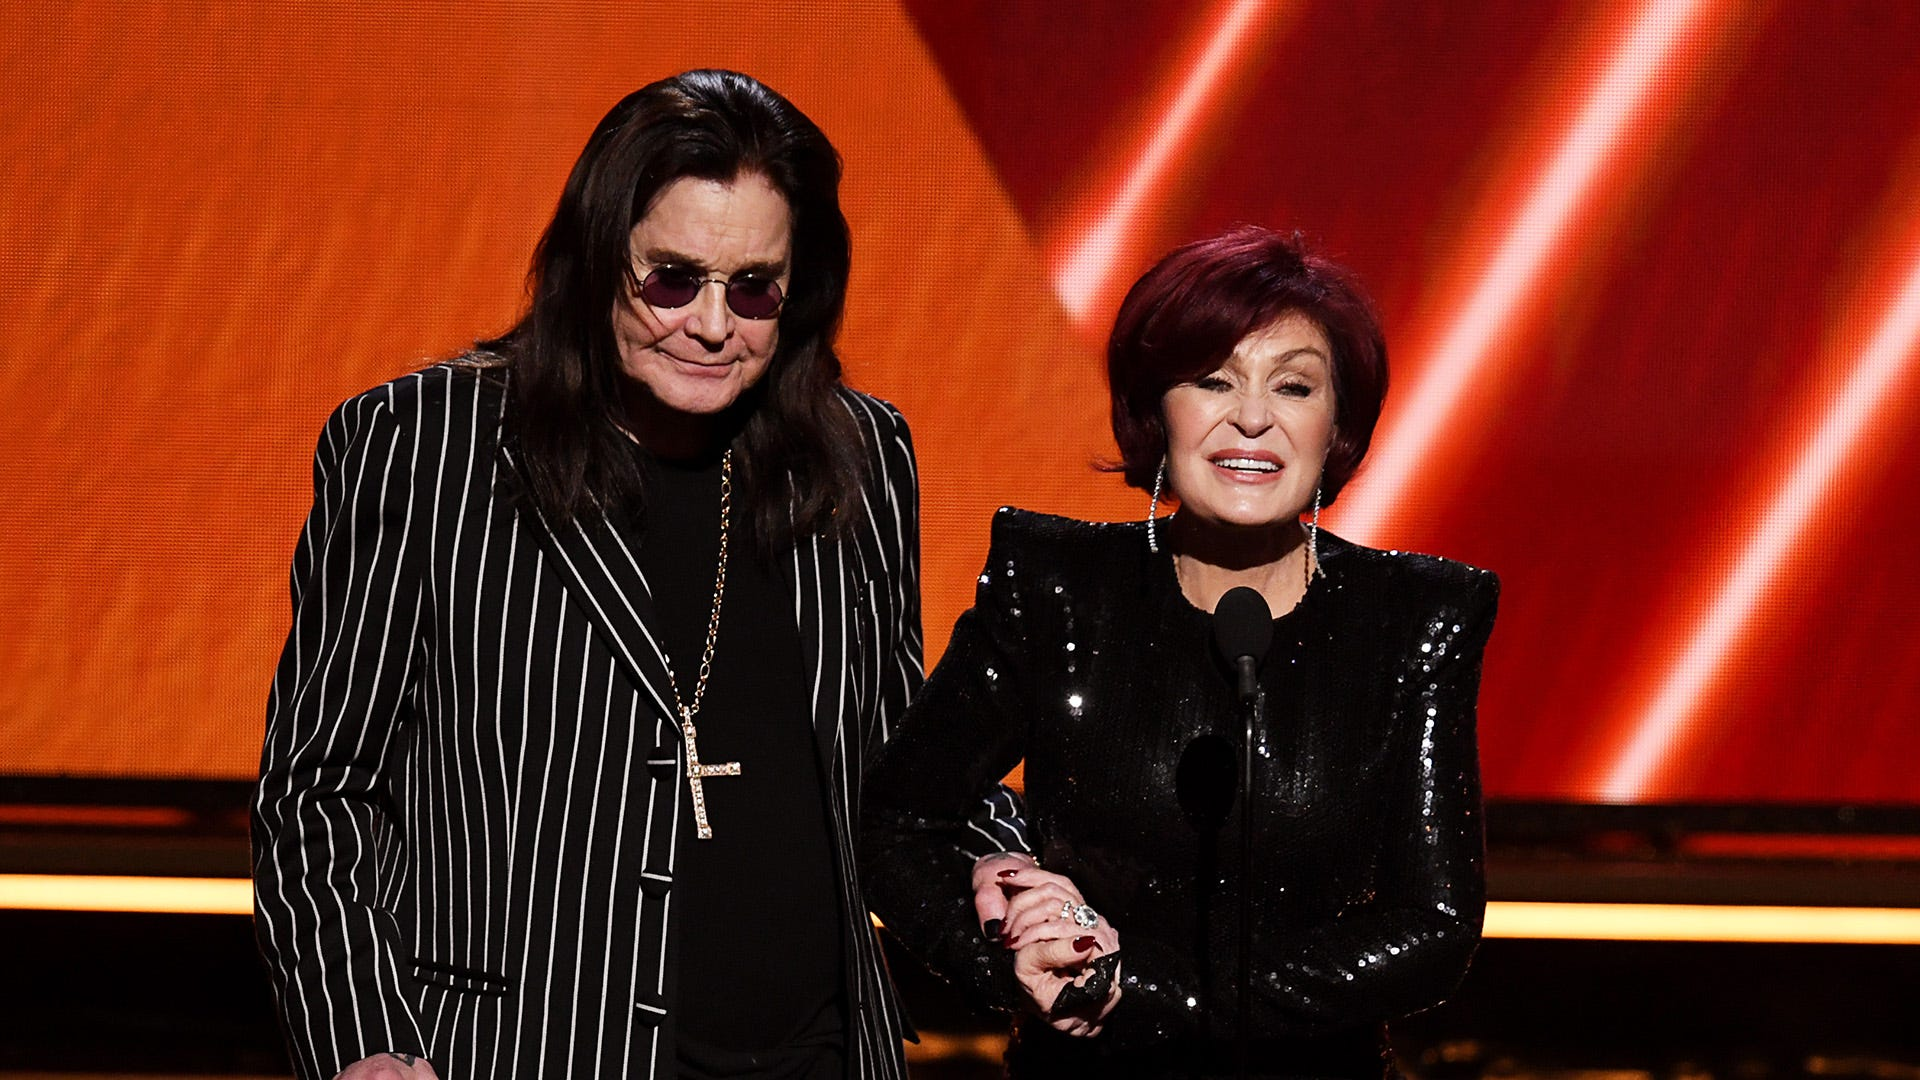 Ozzy Osbourne set for major spine surgery in attempt to return to stage